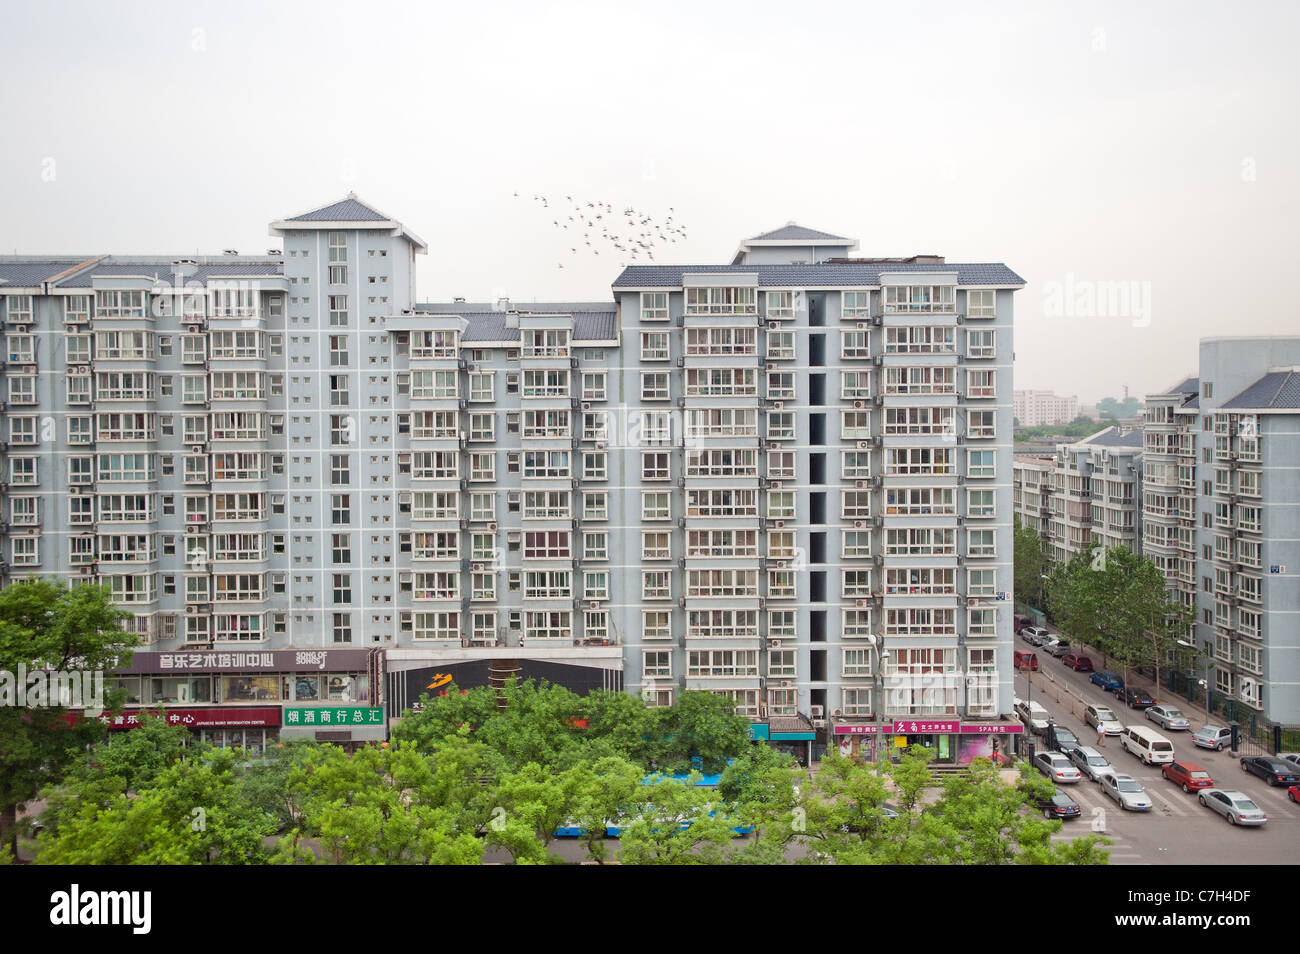 high-rise modern building Residential silo flat apartment in Peking capital of the People's Republic of China - Stock Image